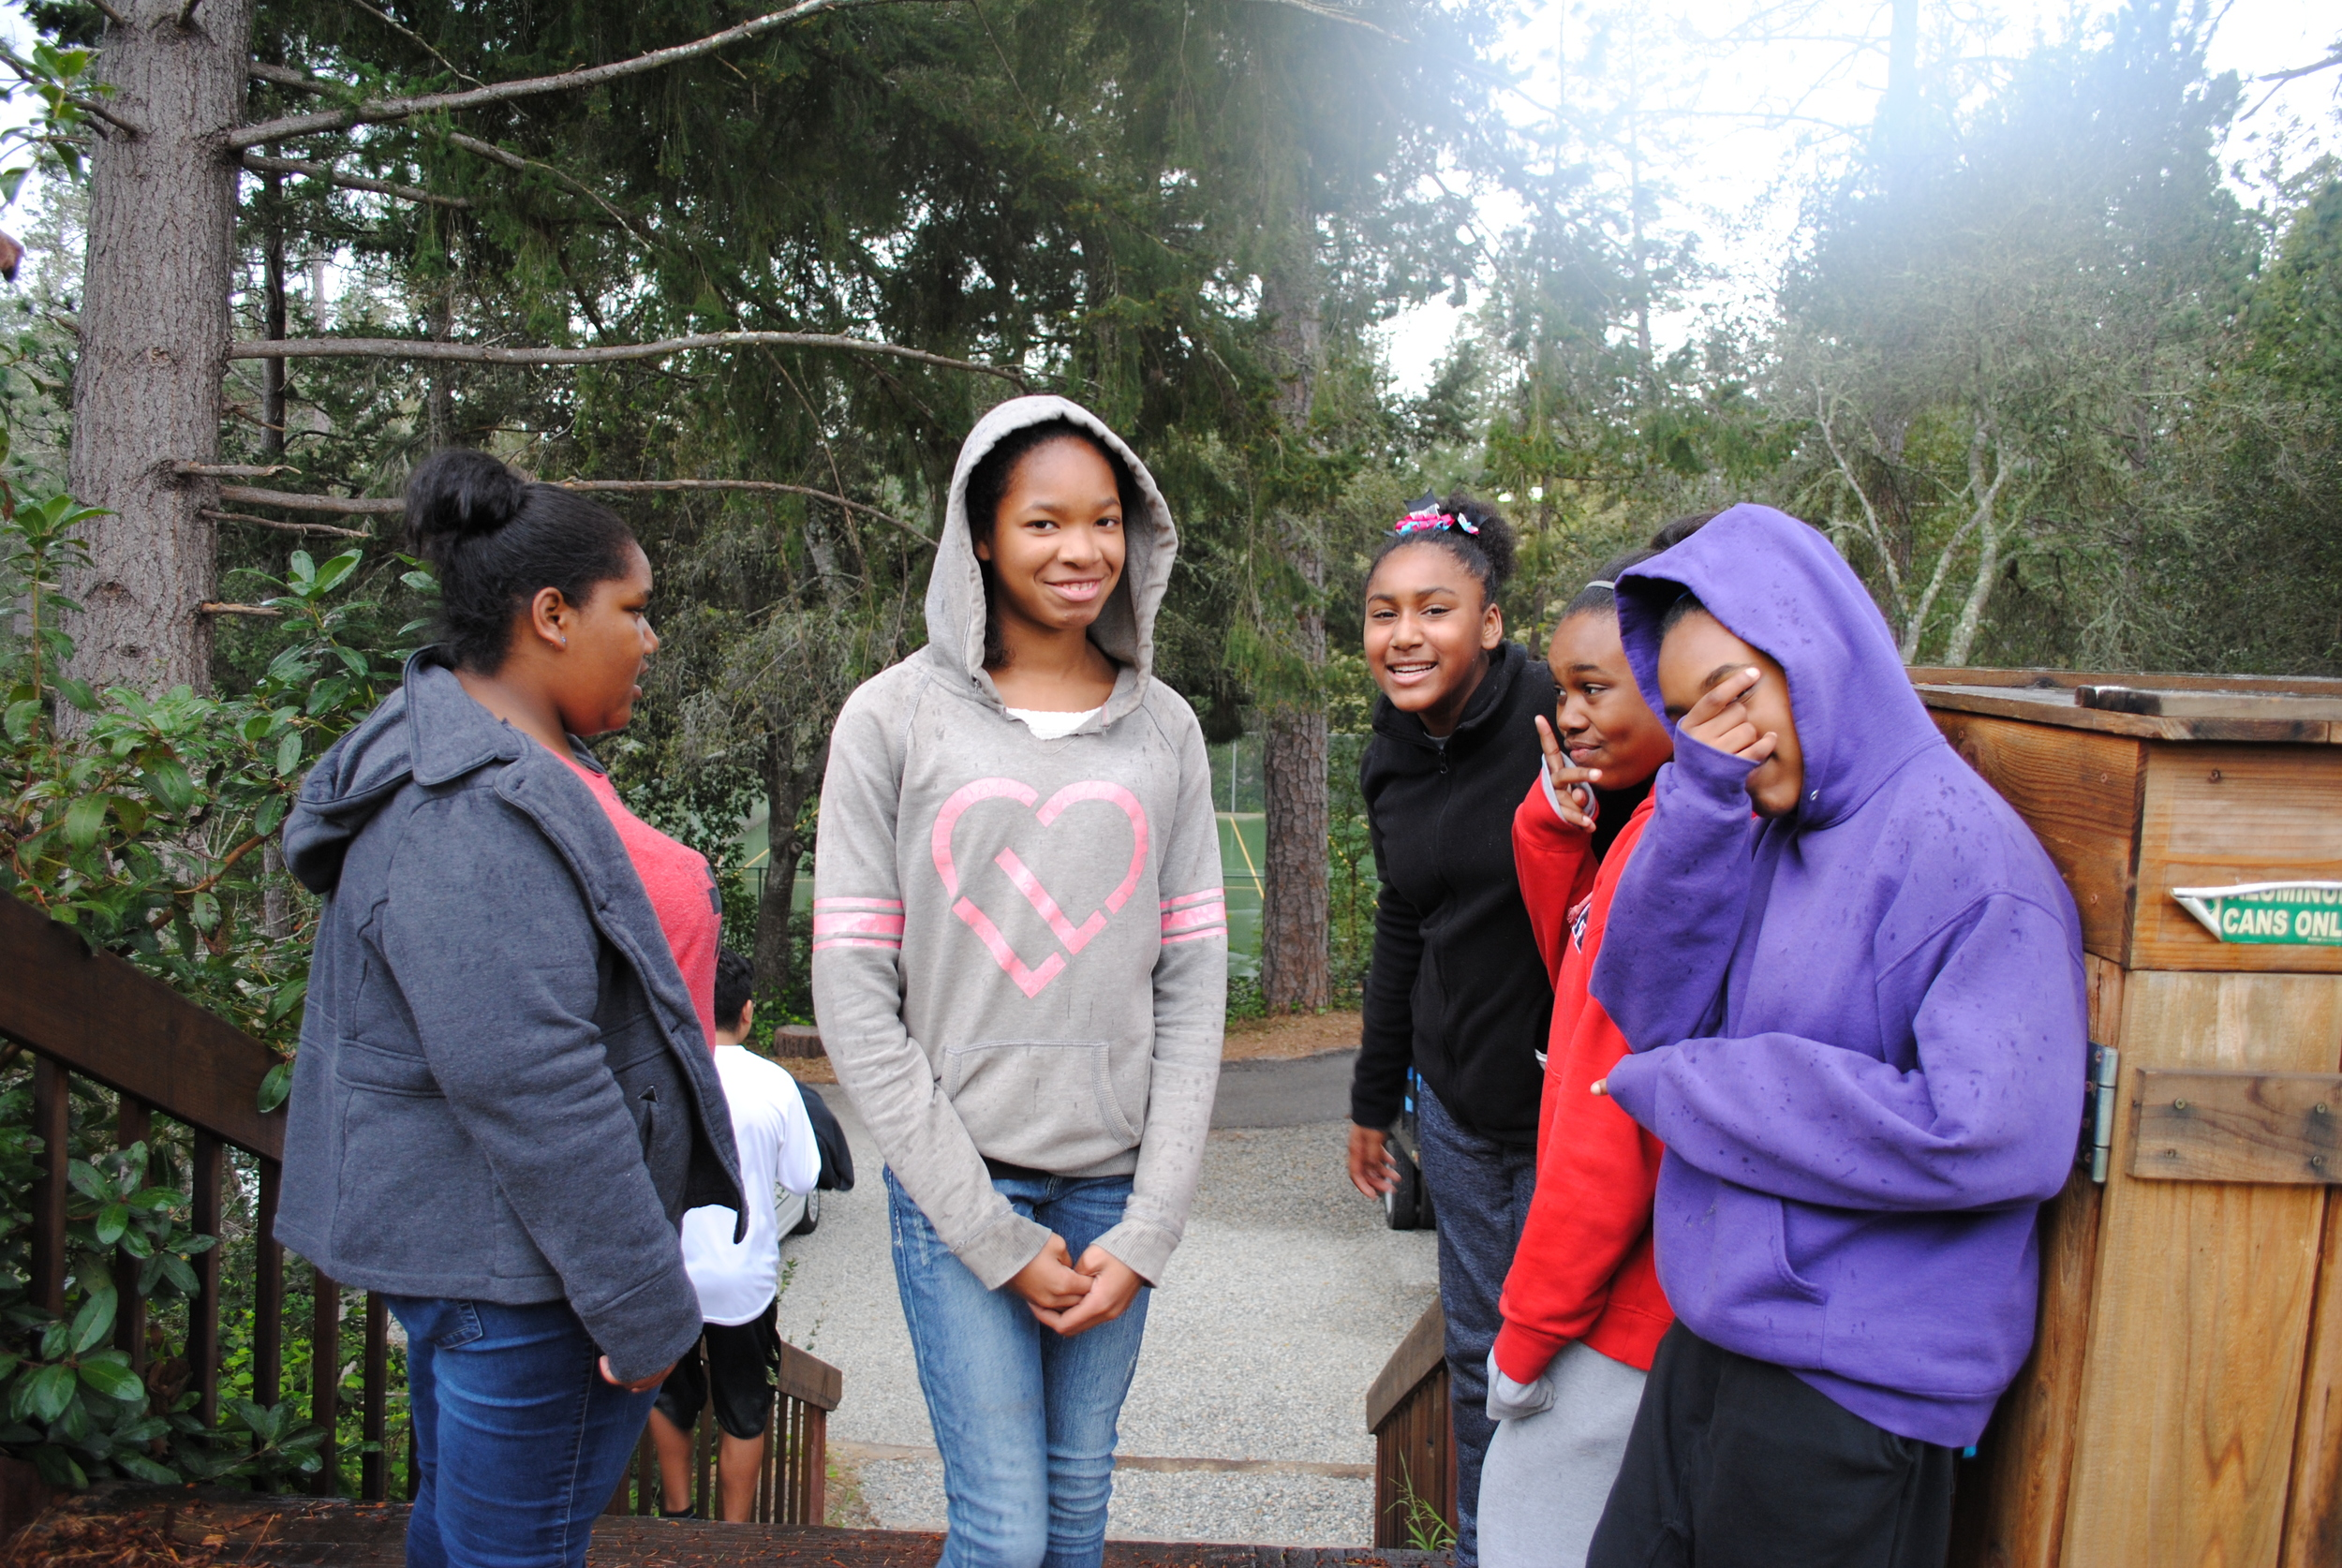 Youth gather while on retreat in the Santa Cruz Mountains.